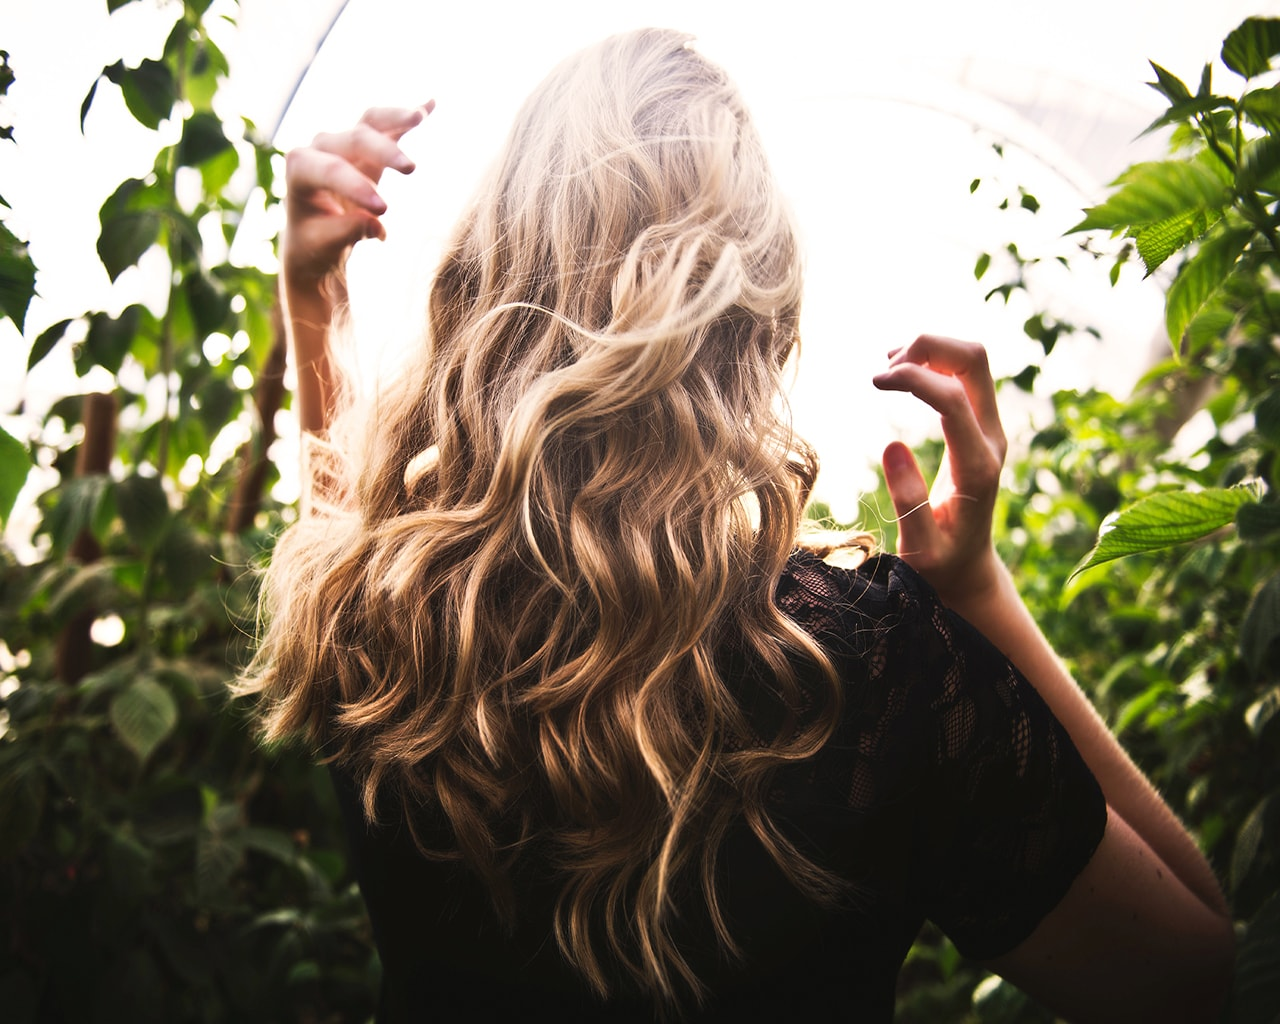 woman, hair, back, blonde